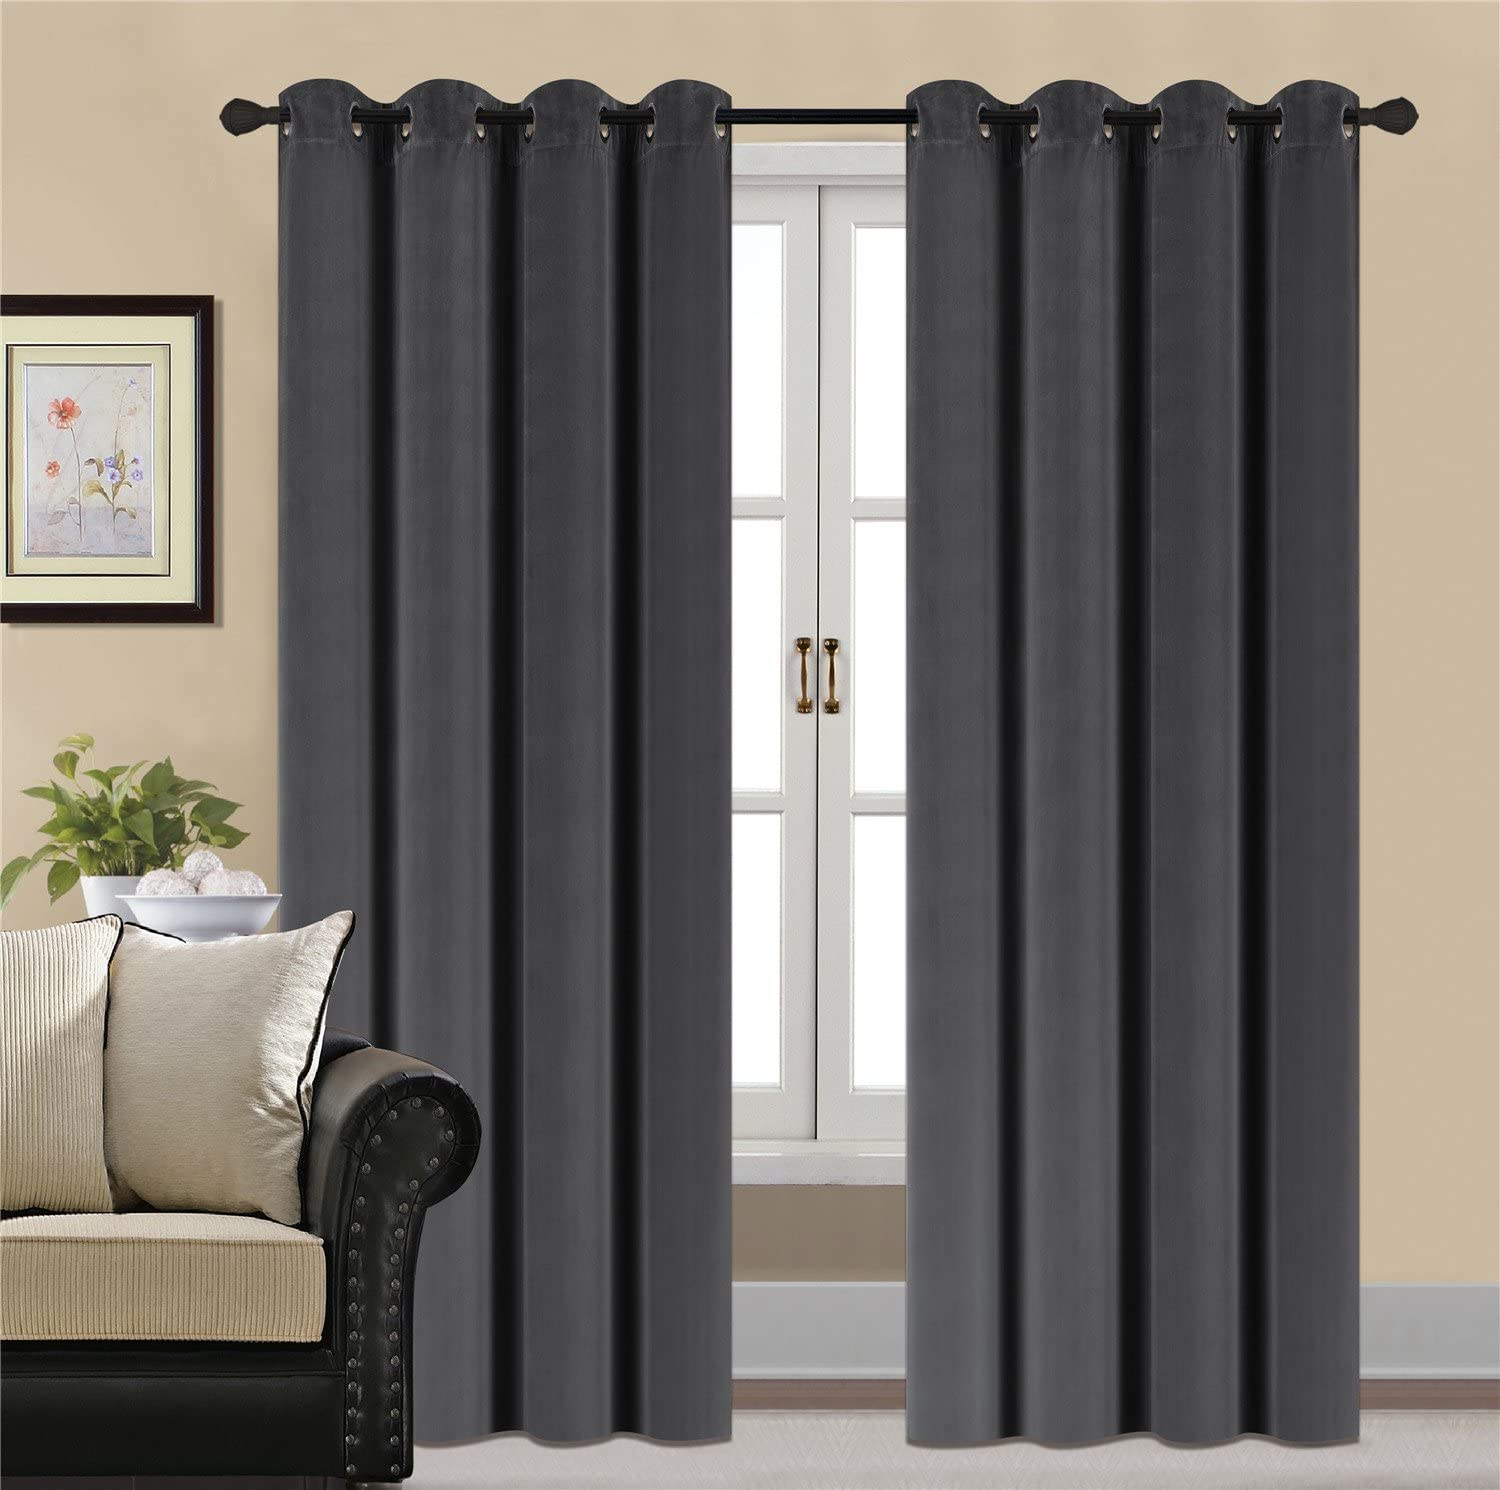 HCILY Velvet Blackout Curtains Thermal Insulated for Bedroom 2 Panels (W52'' x L84'', Dark Grey)